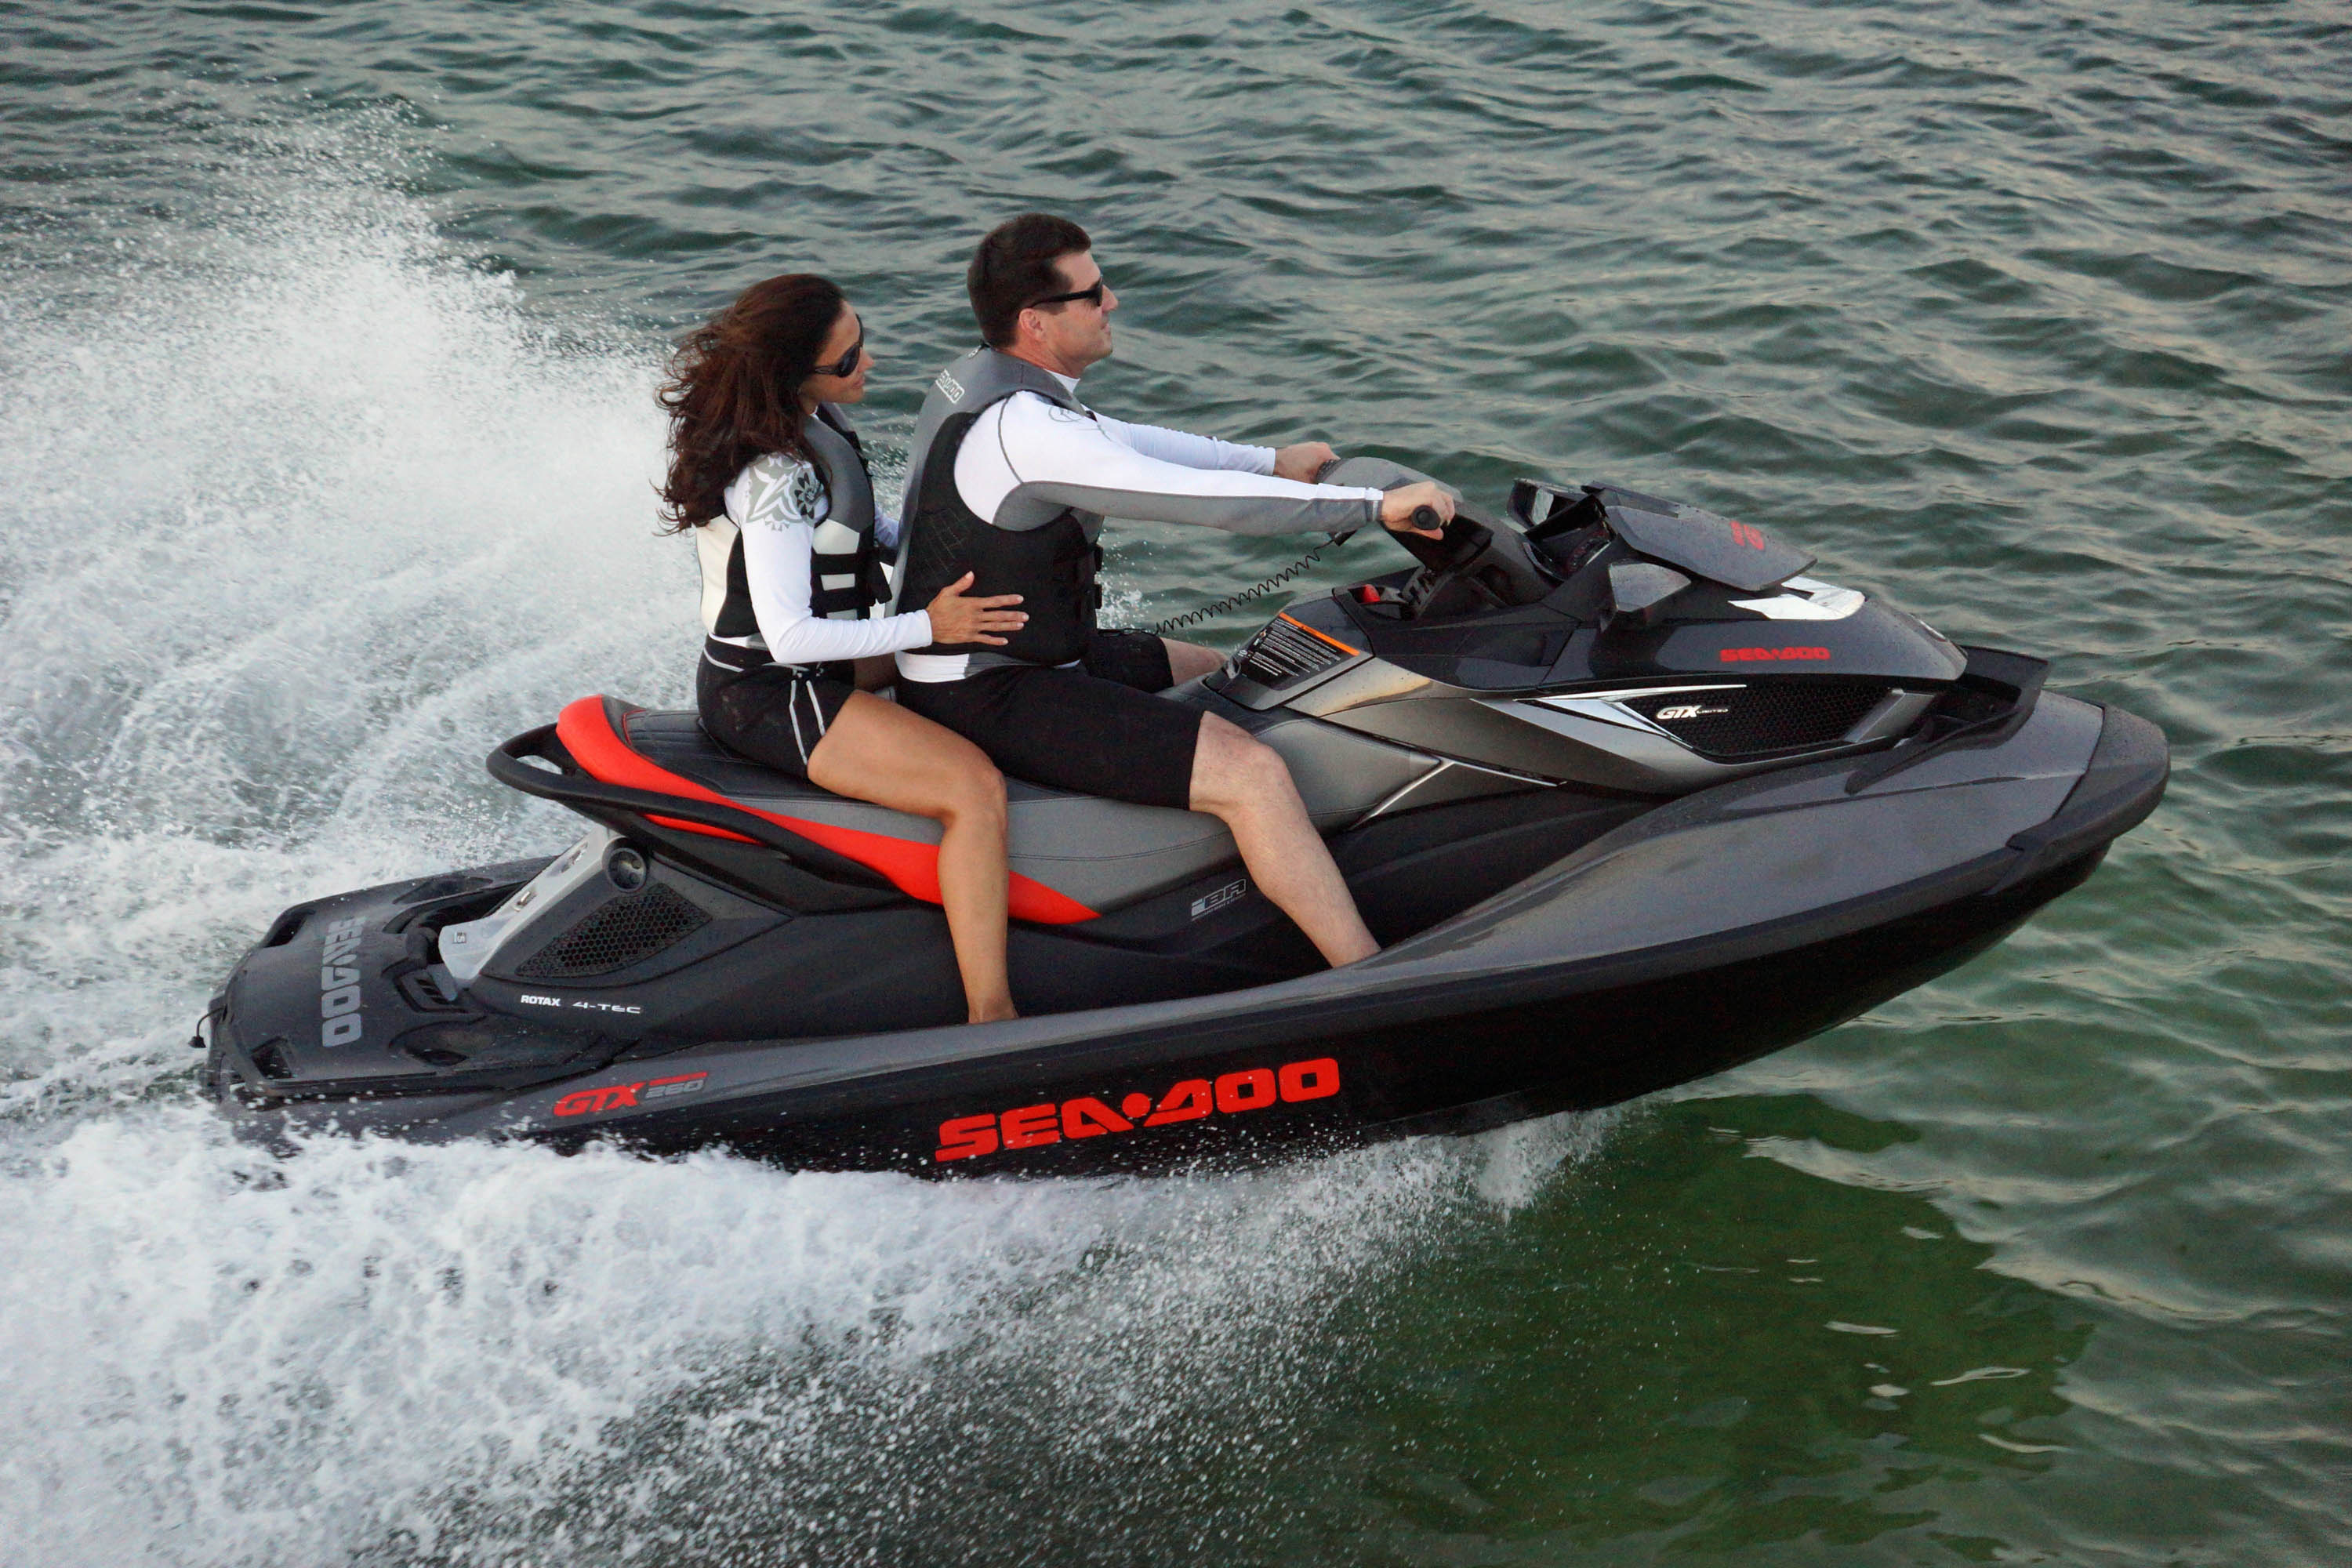 1995 Seadoo Sportster Fuse Box Location Trusted Wiring Diagrams 1996 Diagram Schematic Gtx Electrical Work U2022 Cover